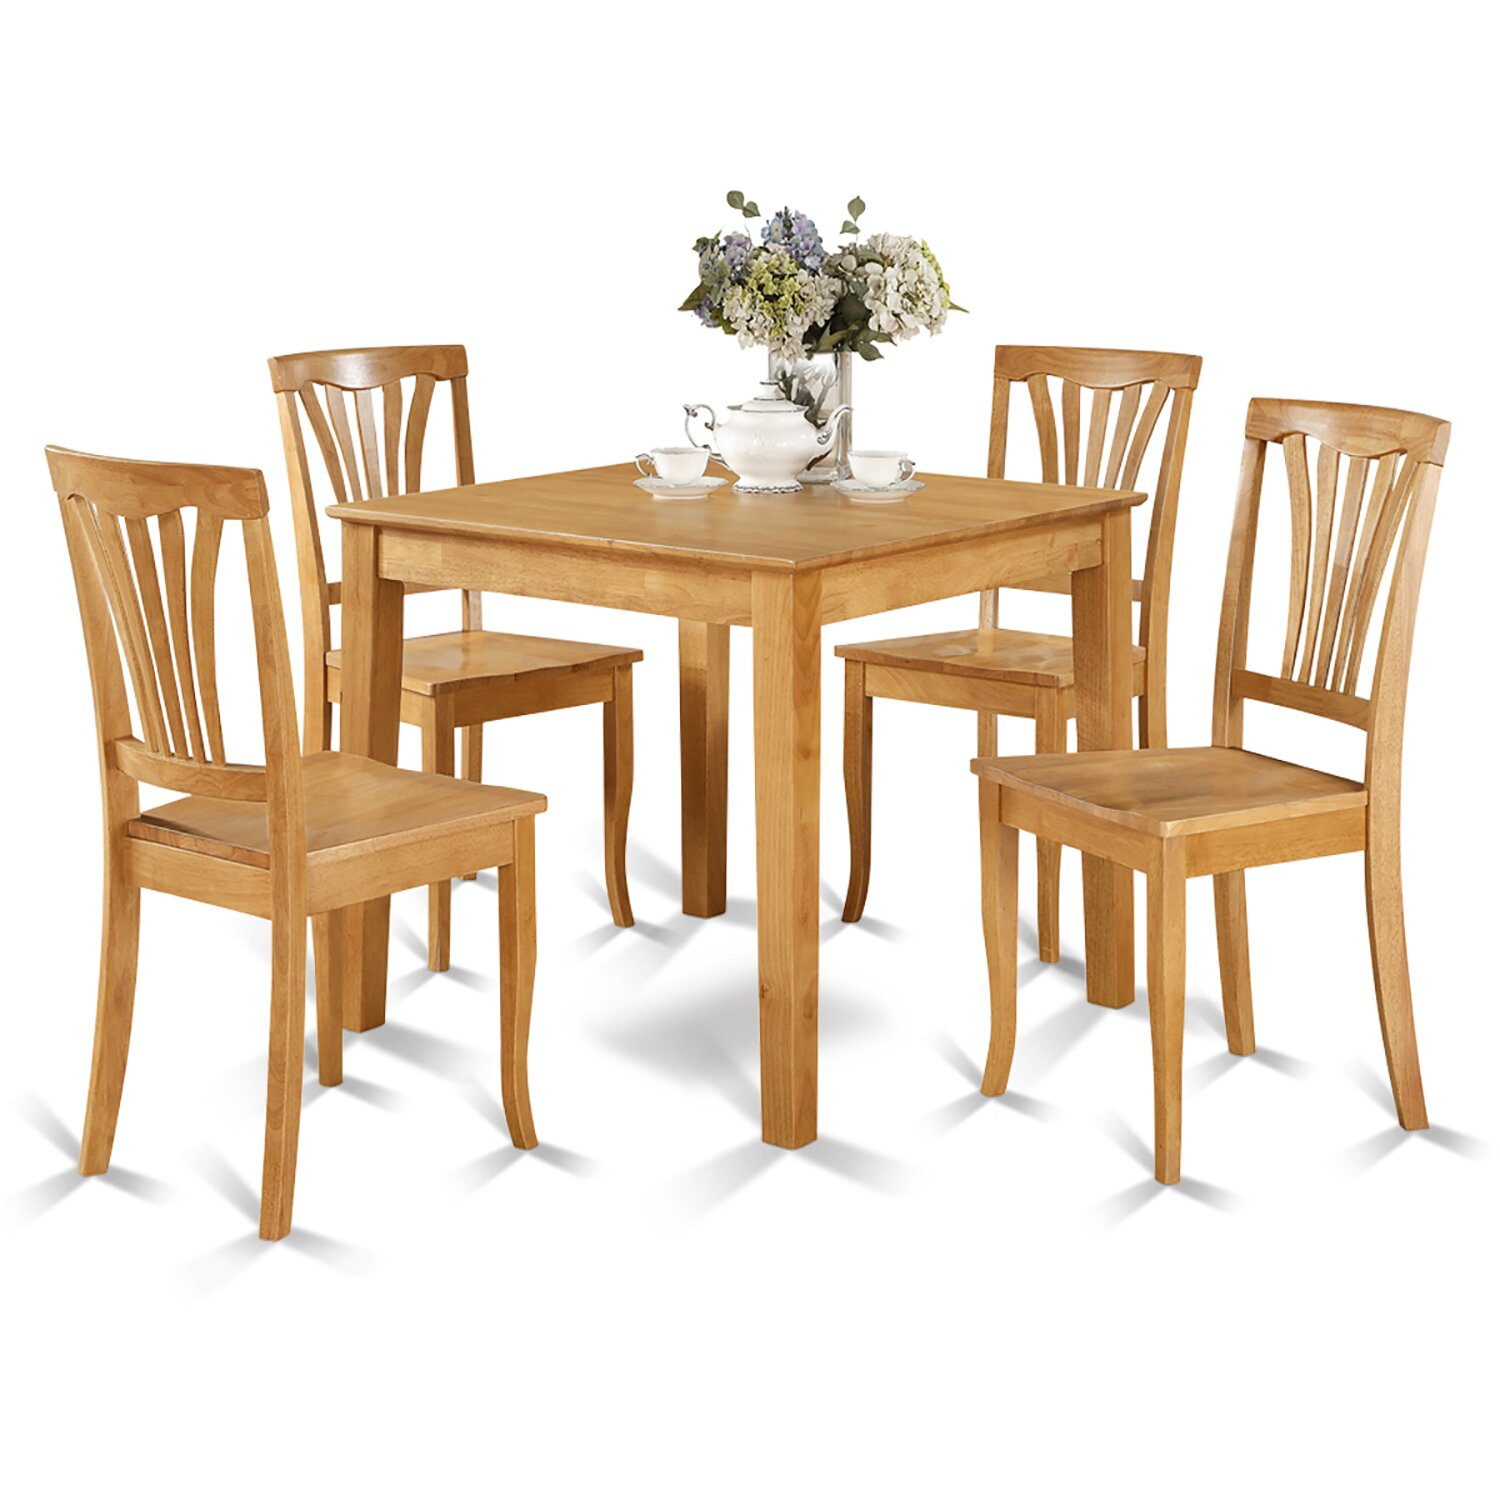 Wooden Importers Oxford 5 Piece Dining Set & Reviews